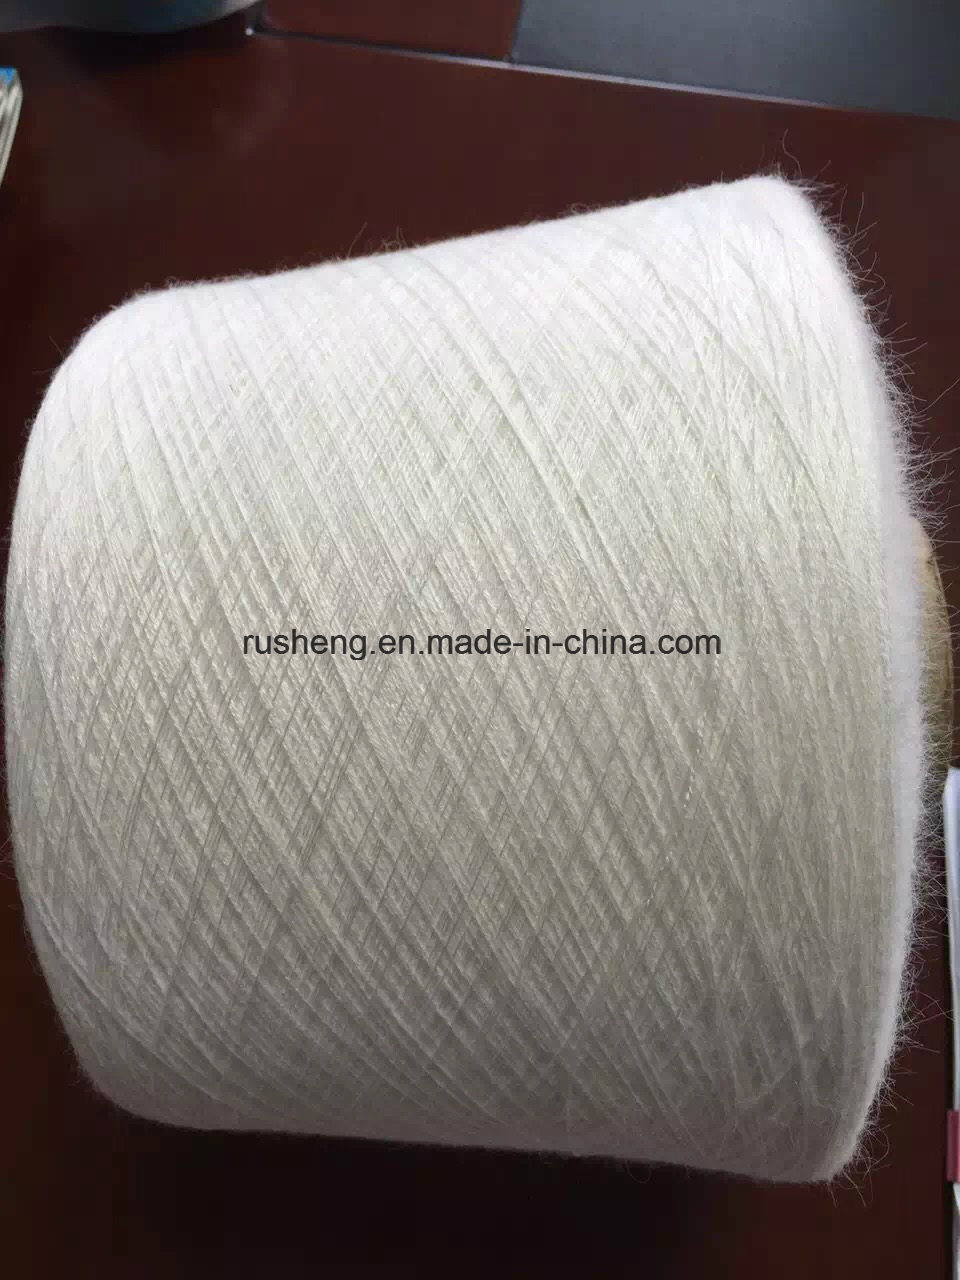 Blended Core Spun Yarn for Sweaters etc